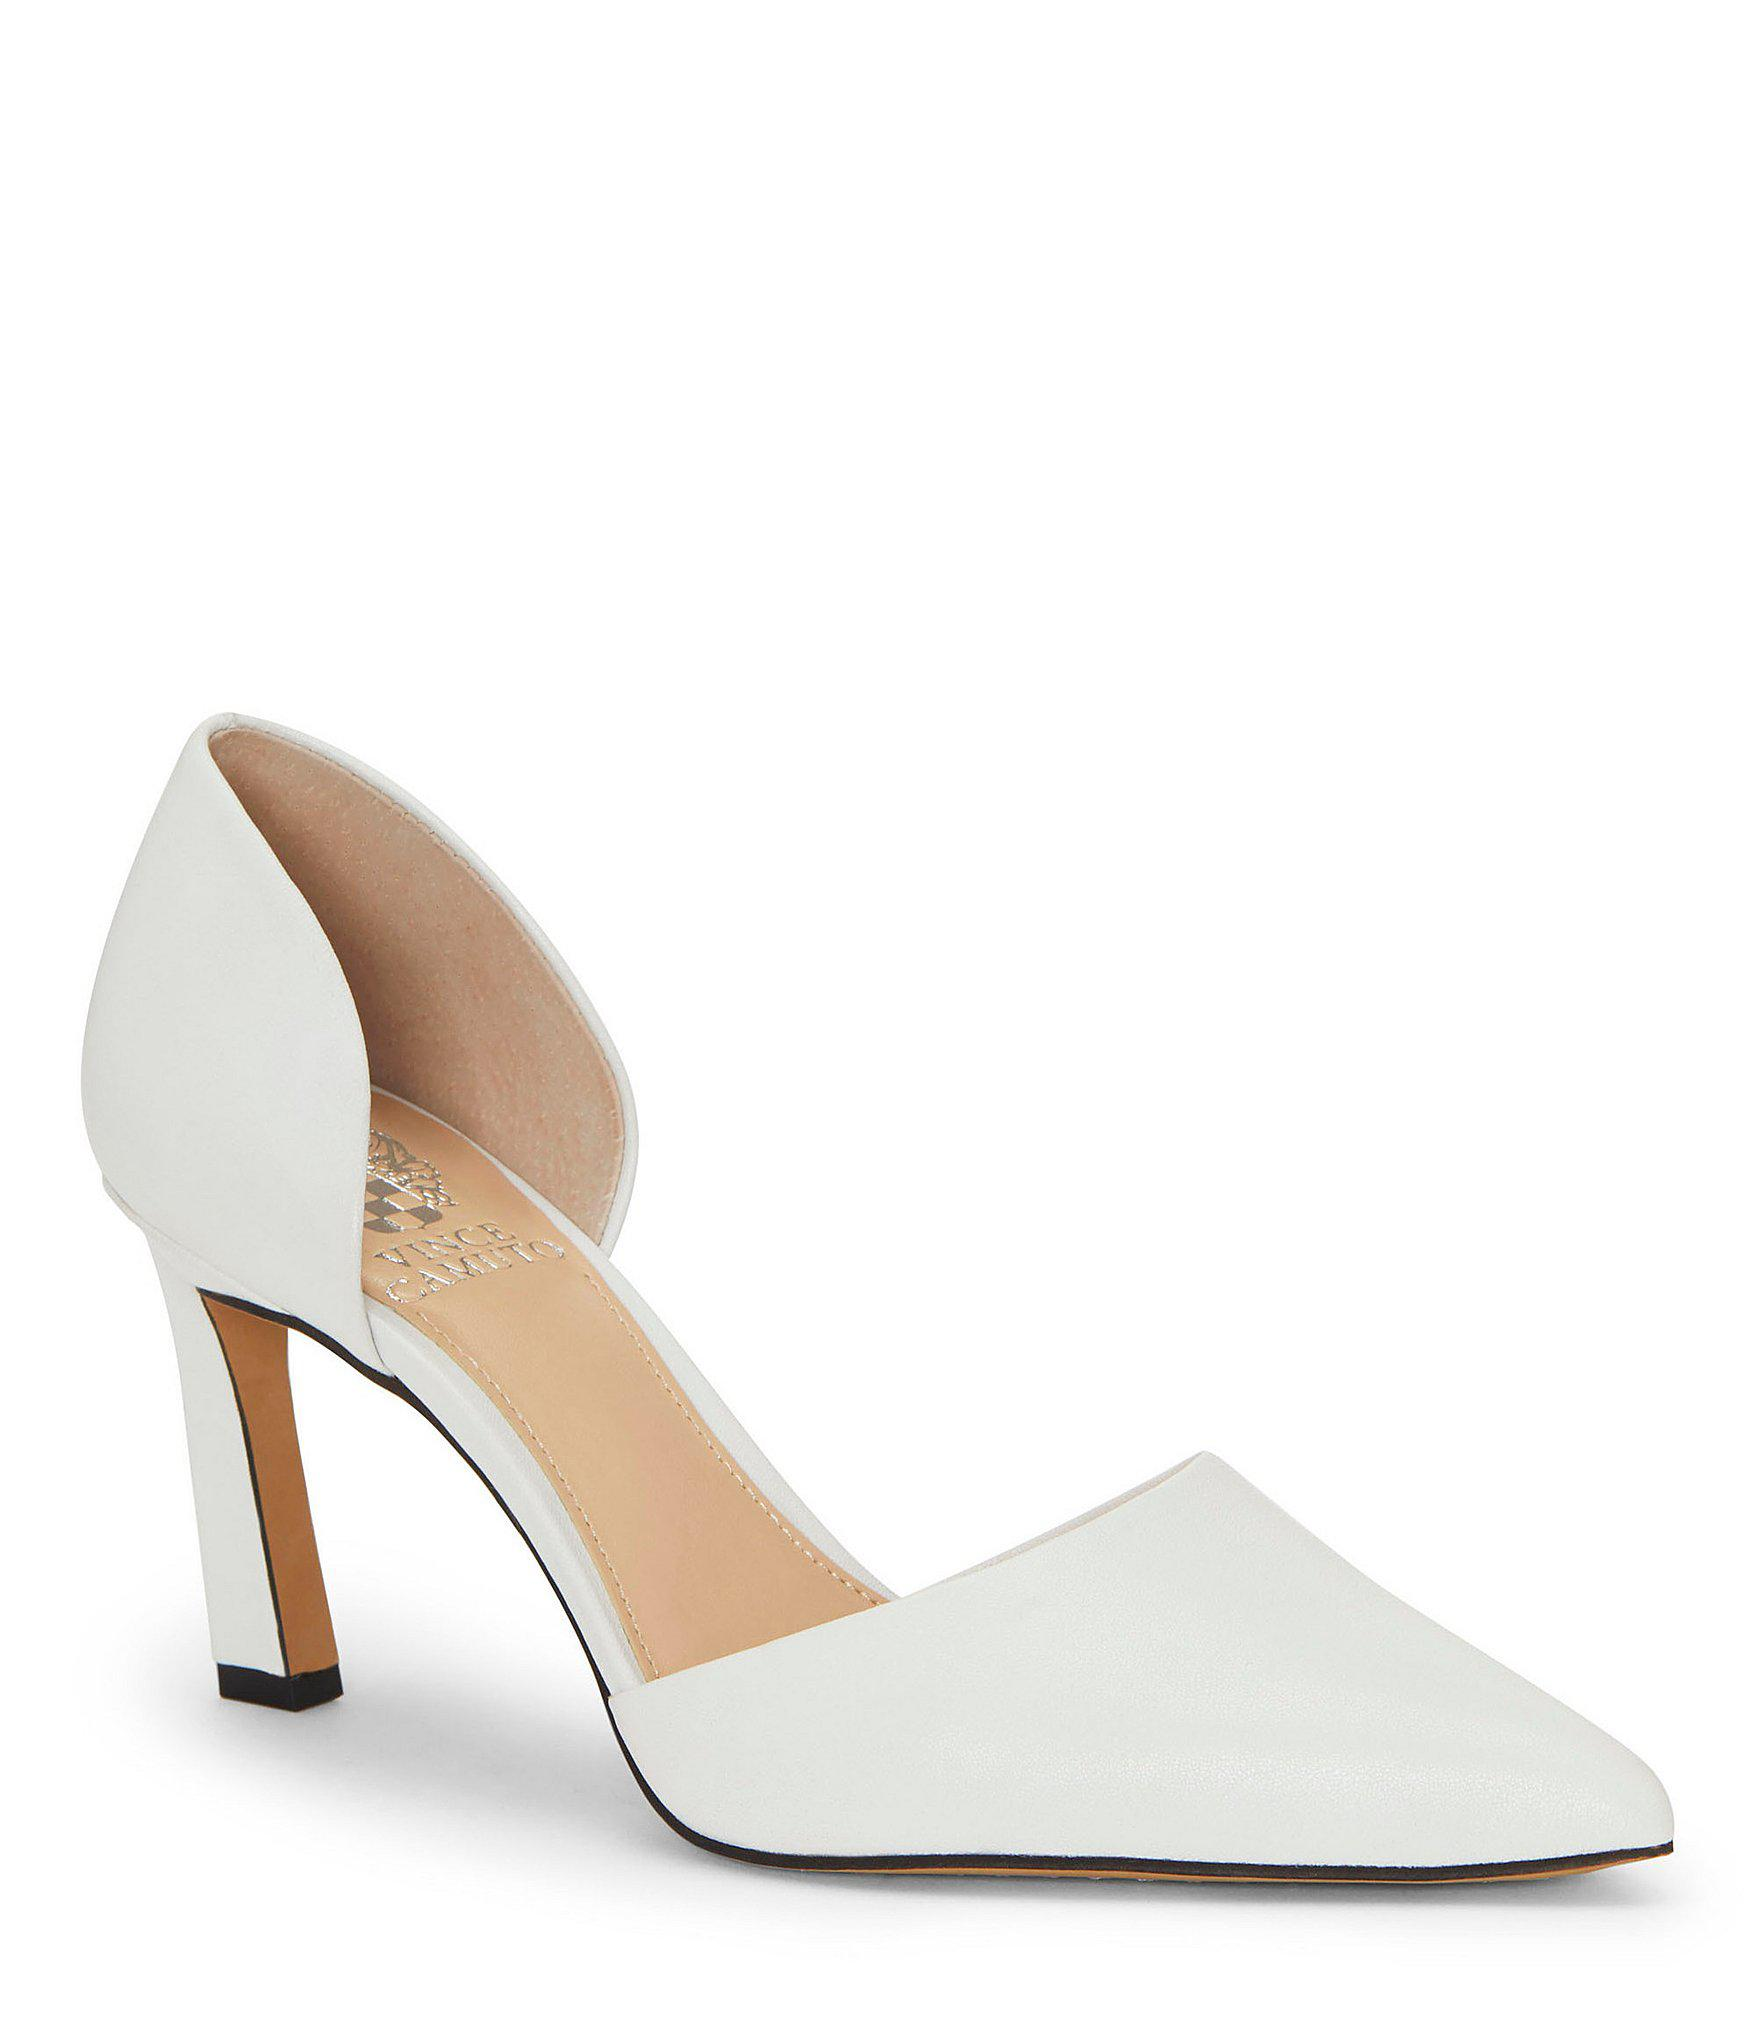 d3611bc2117 Lyst - Vince Camuto Renny Patent Leather D orsay Pumps in White ...